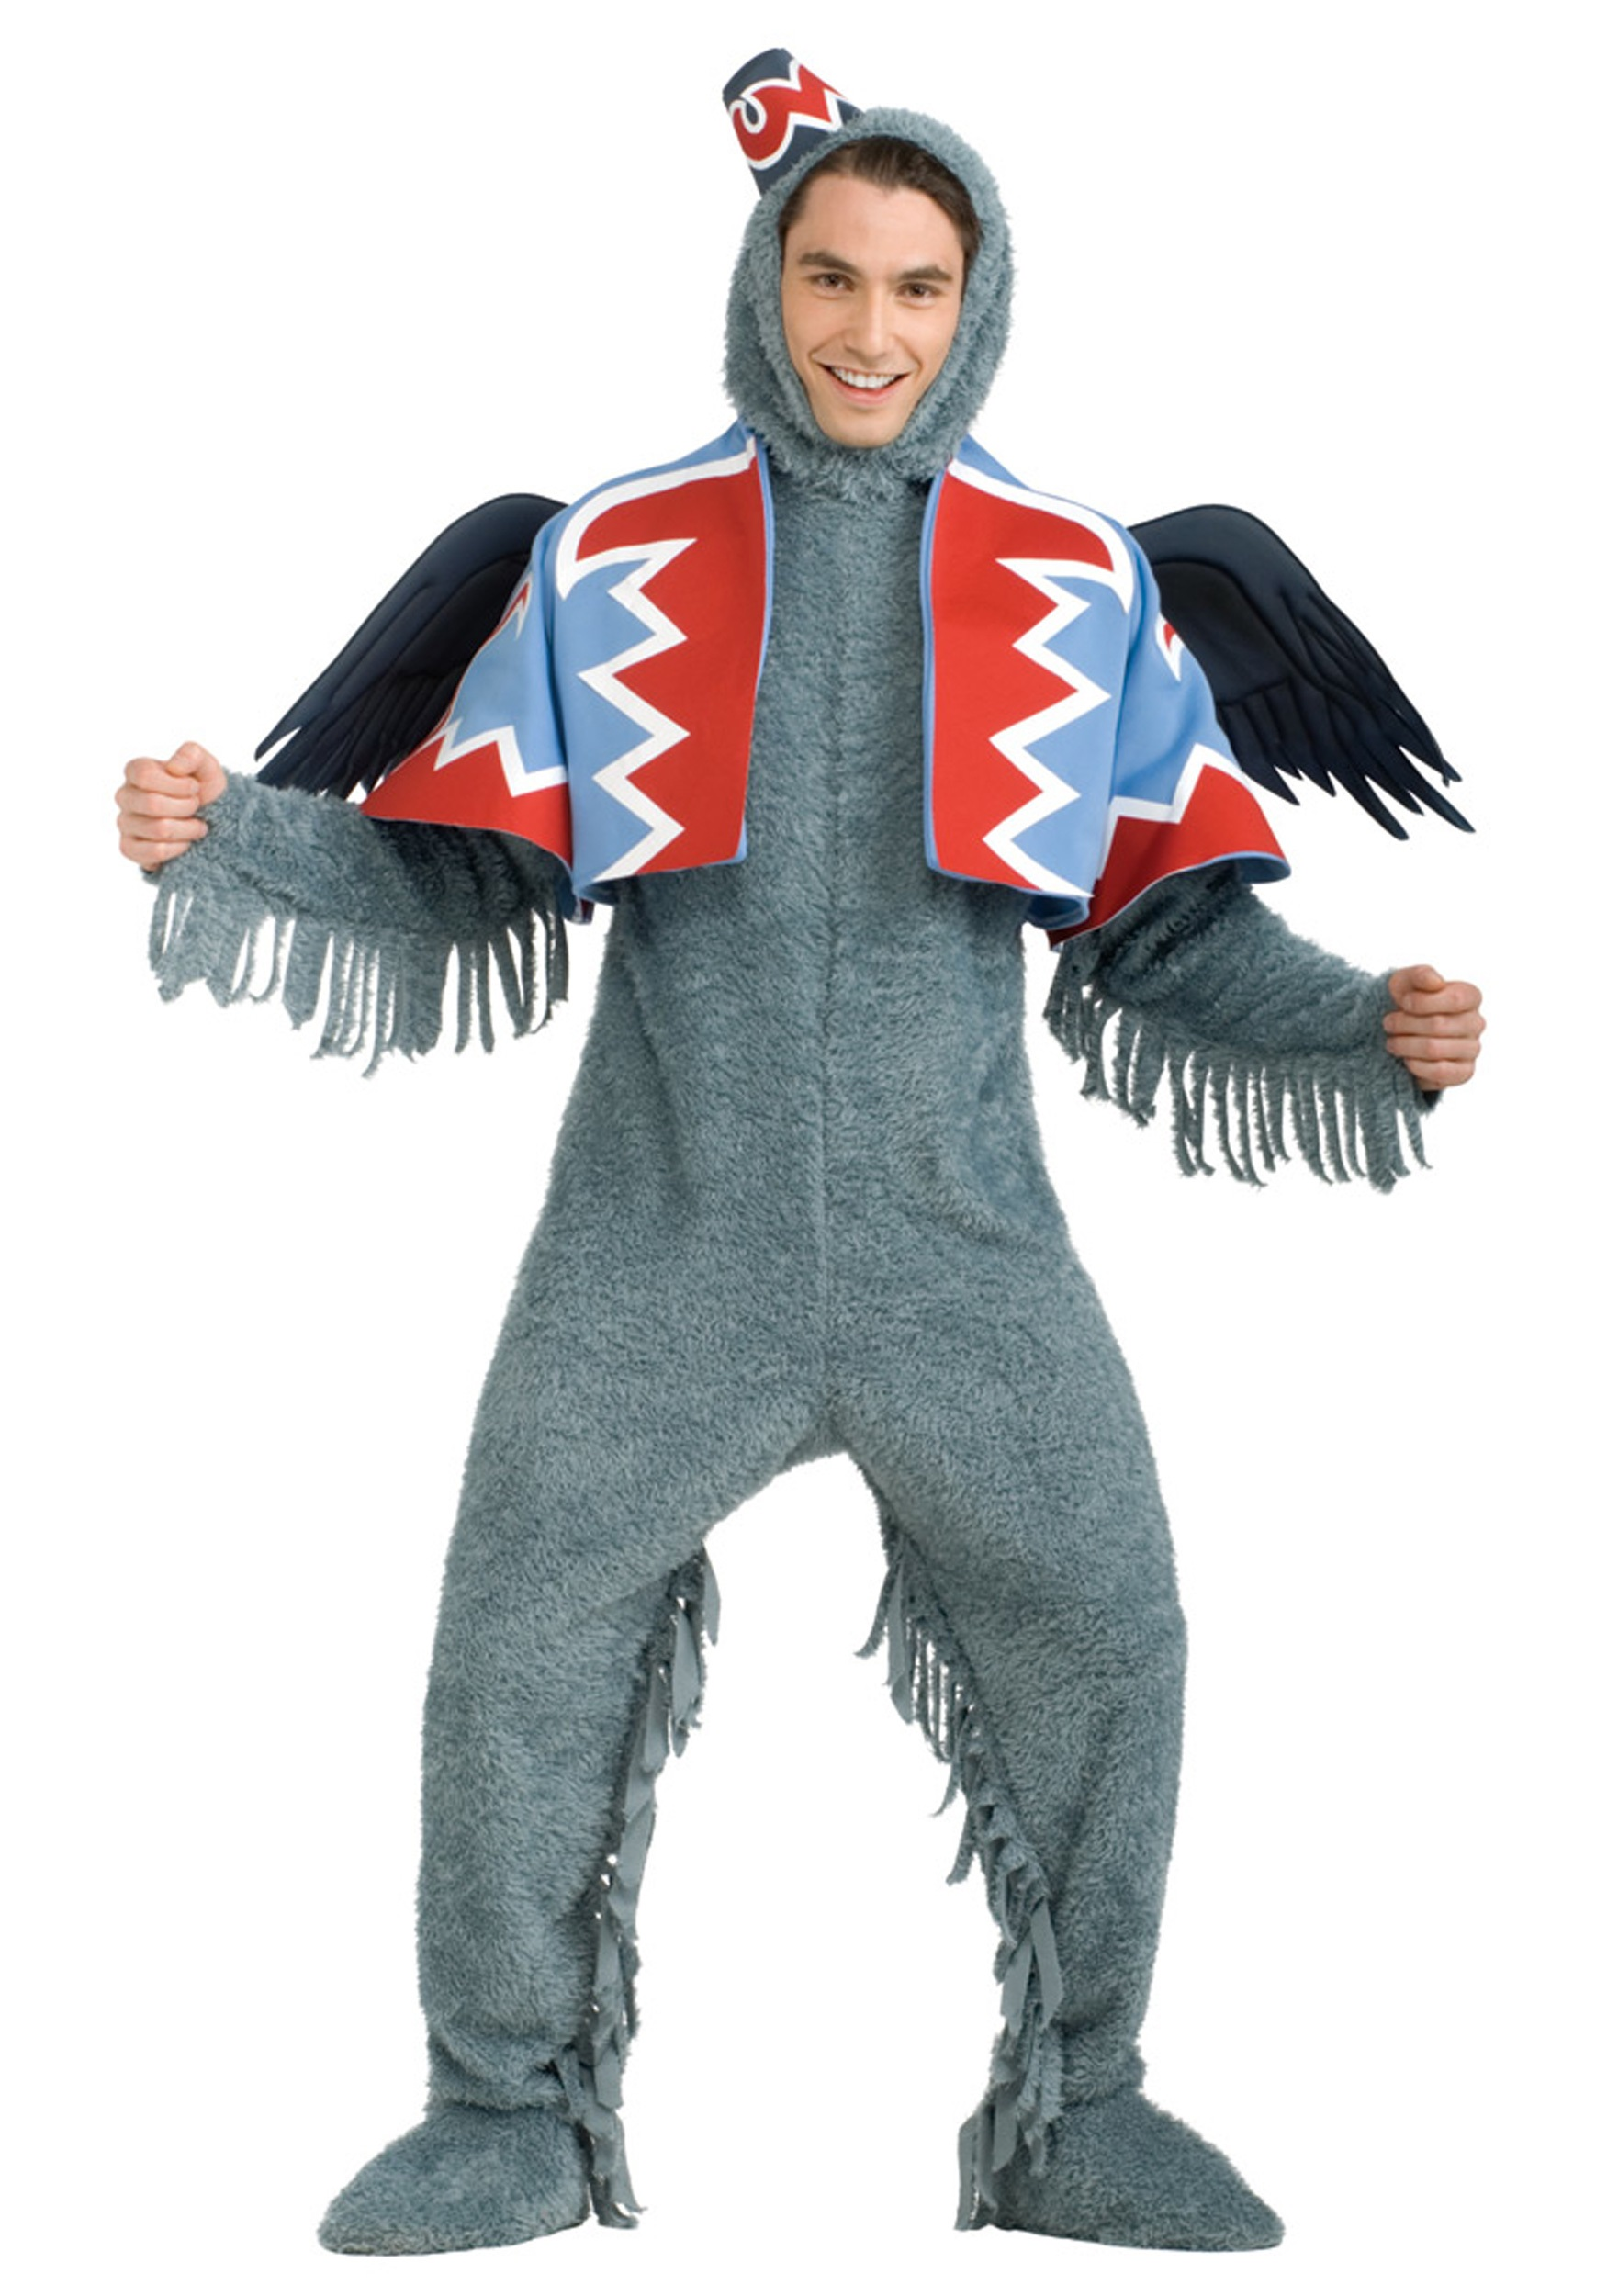 Flying Monkey Costume | Movie Character Costume | Jumpsuit